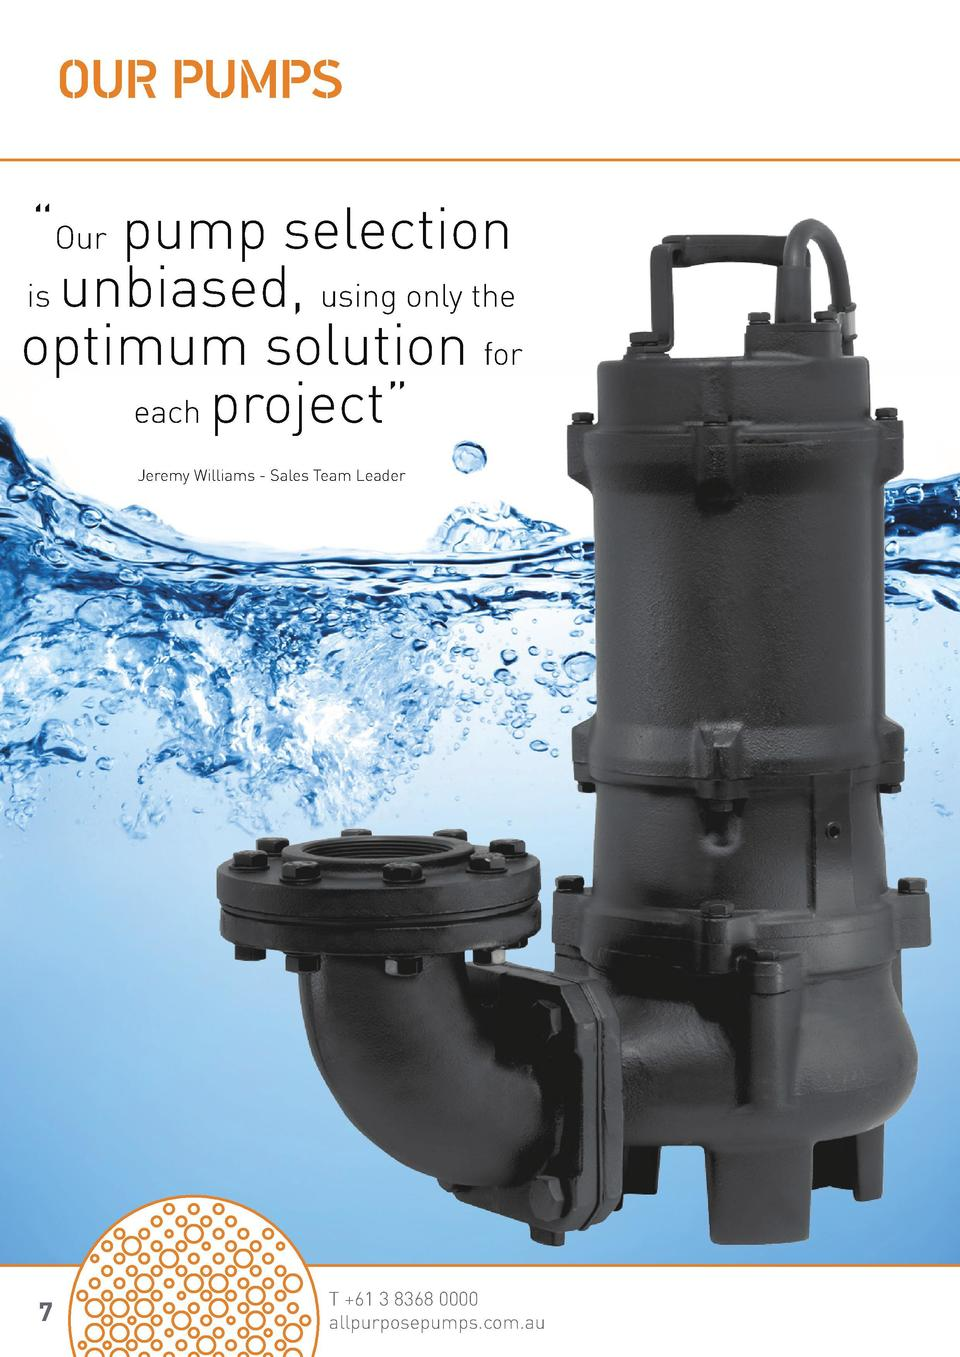 OUR PUMPS     Our pump selection is unbiased, using only the optimum solution for each project     Creating pump solutions...